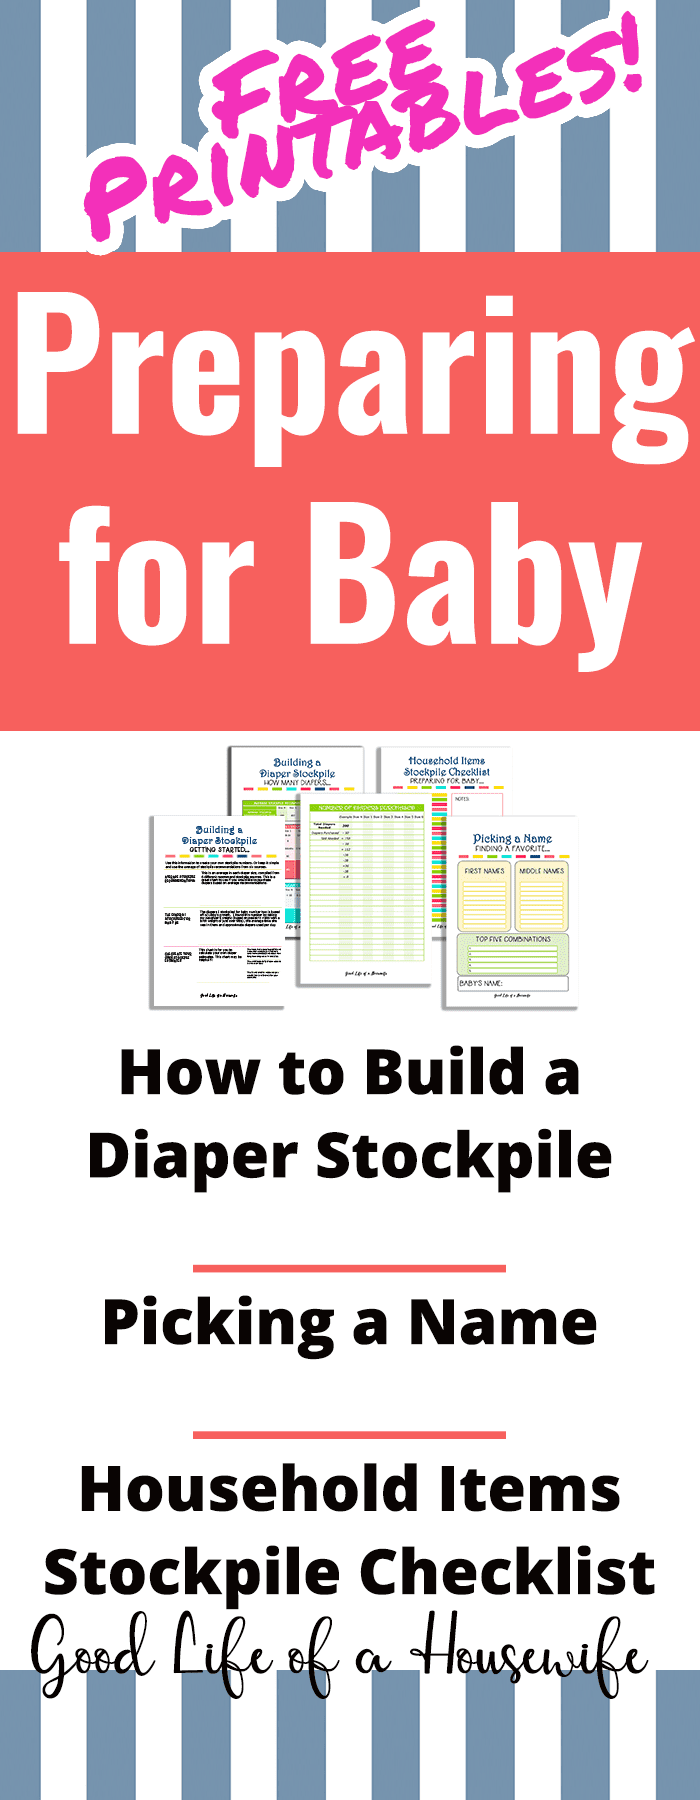 A checklist and free printable to help you prepare for a new baby. It includes how to build a diaper stockpile, a place for favorite names, and household items to stockpile and more! #preparingforbaby #baby #diaperstockpile #diapers #newbabychecklist